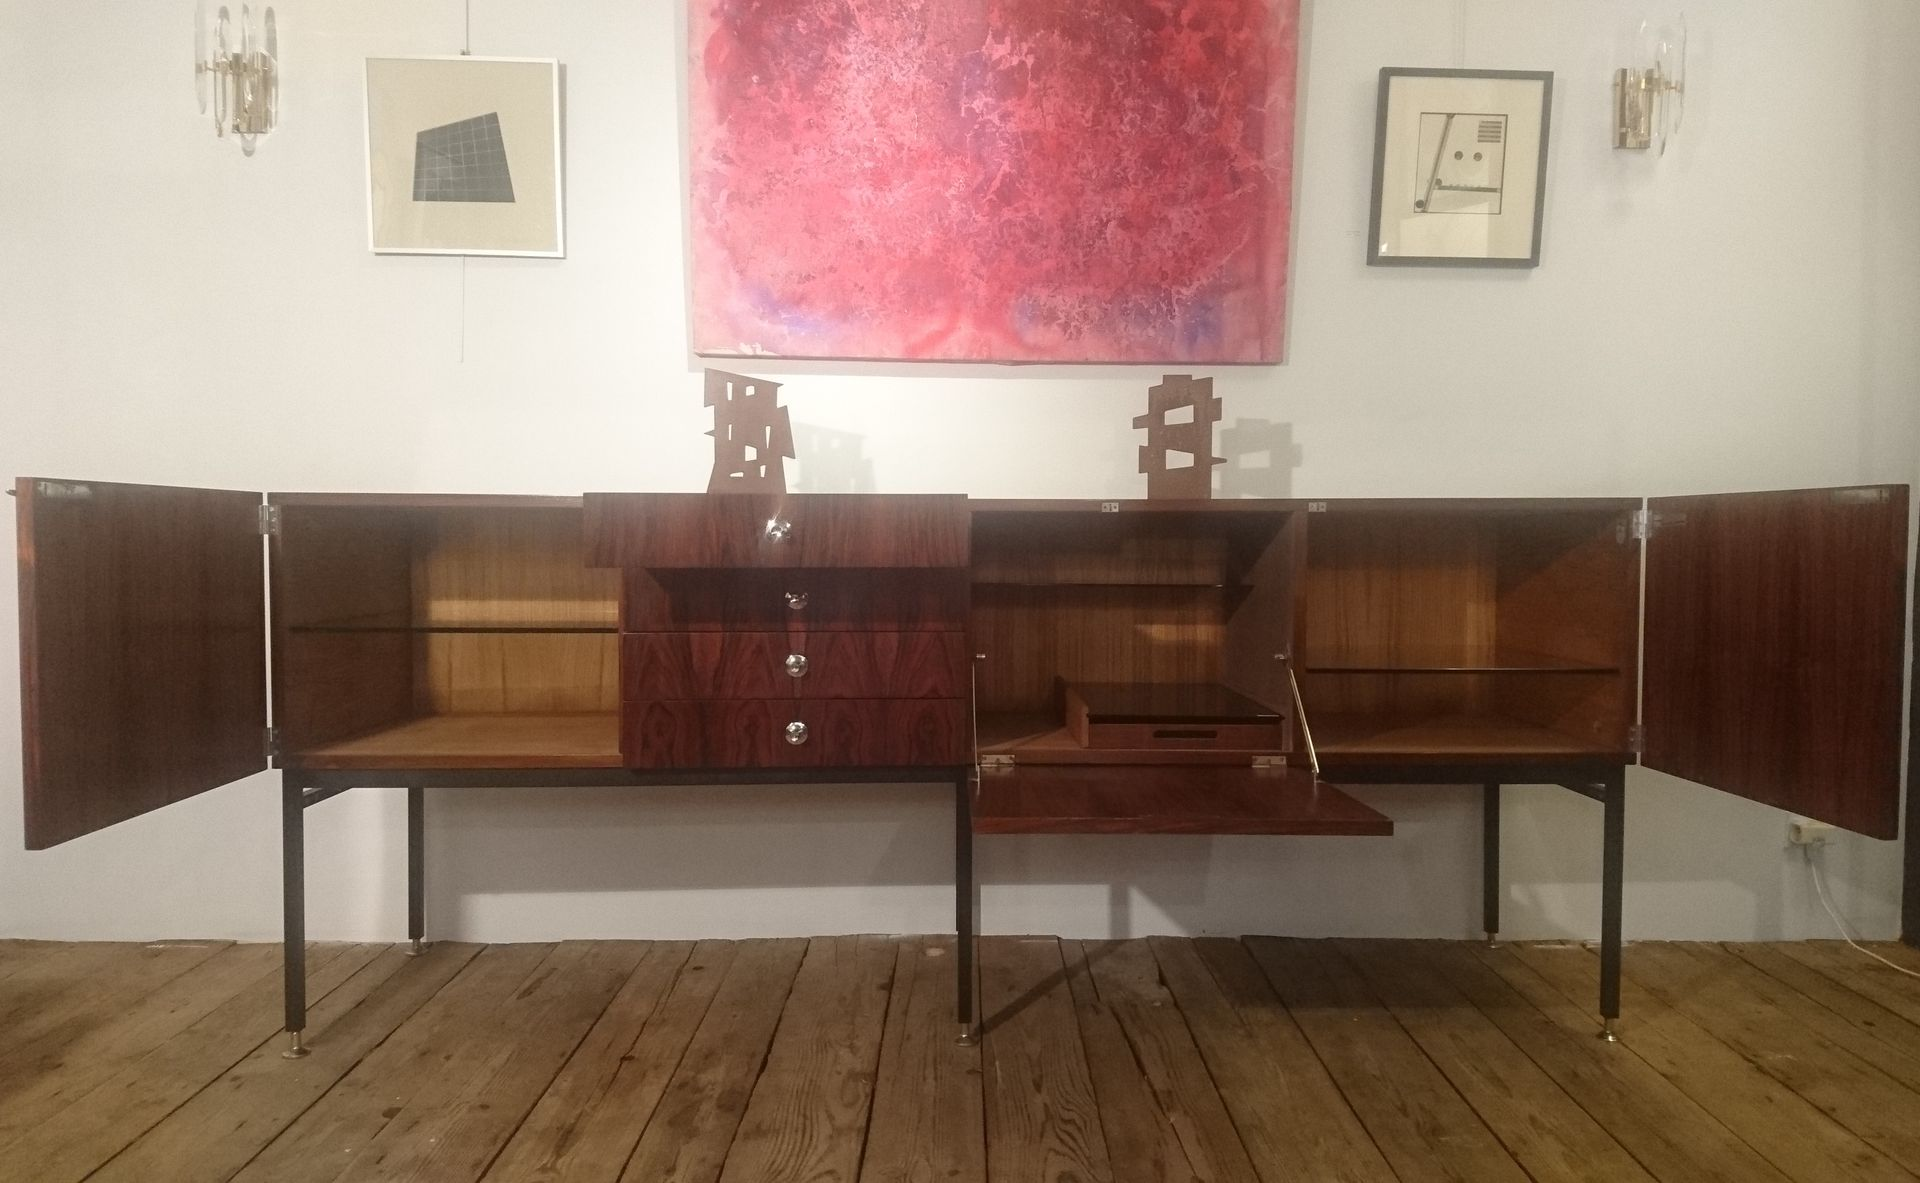 french model 802 long rosewood sideboard by alain richard for meubles tv 1950s for sale at pamono. Black Bedroom Furniture Sets. Home Design Ideas